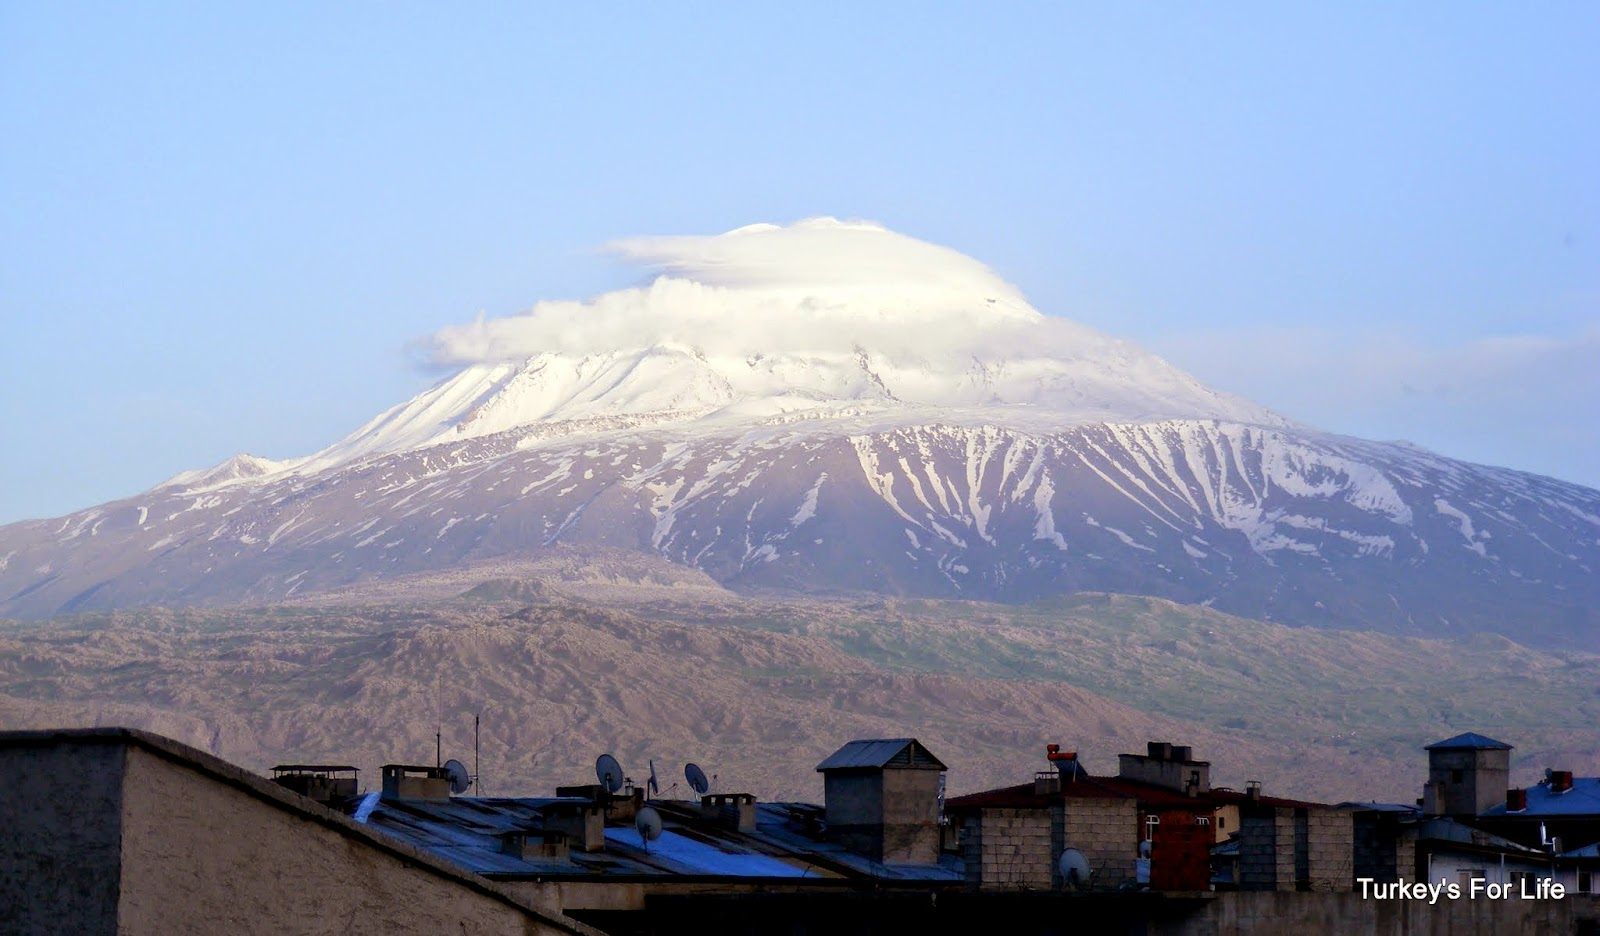 Ararat Mountain (Ağrı Dağı) From Iğdır, East Turkey